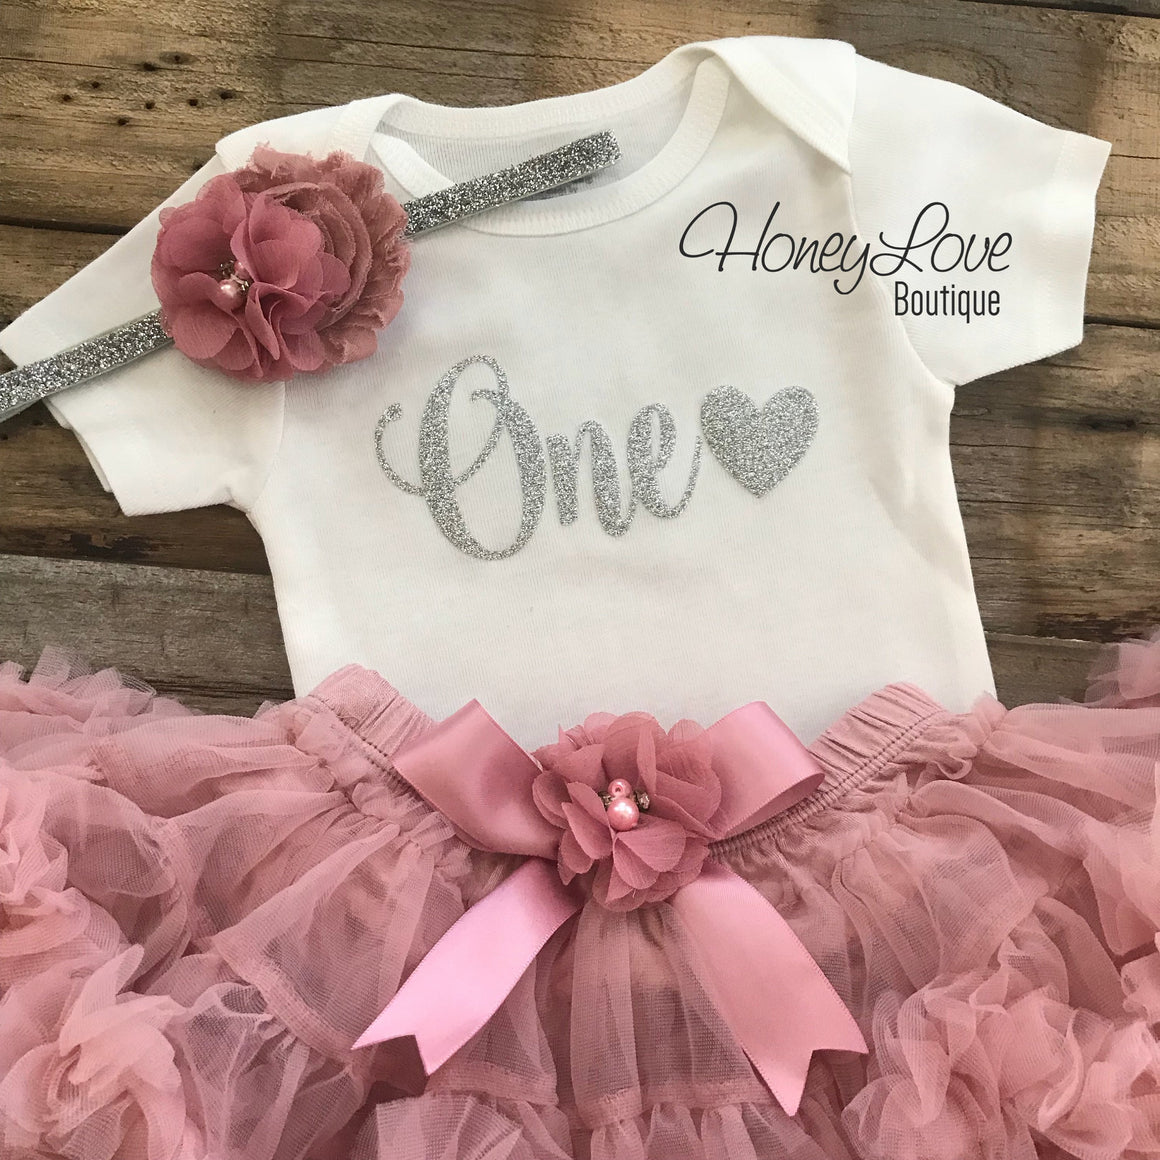 PRE-ORDER FOR MID MARCH - One with heart - Birthday Outfit - Vintage Pink and Silver/Gold Glitter - HoneyLoveBoutique